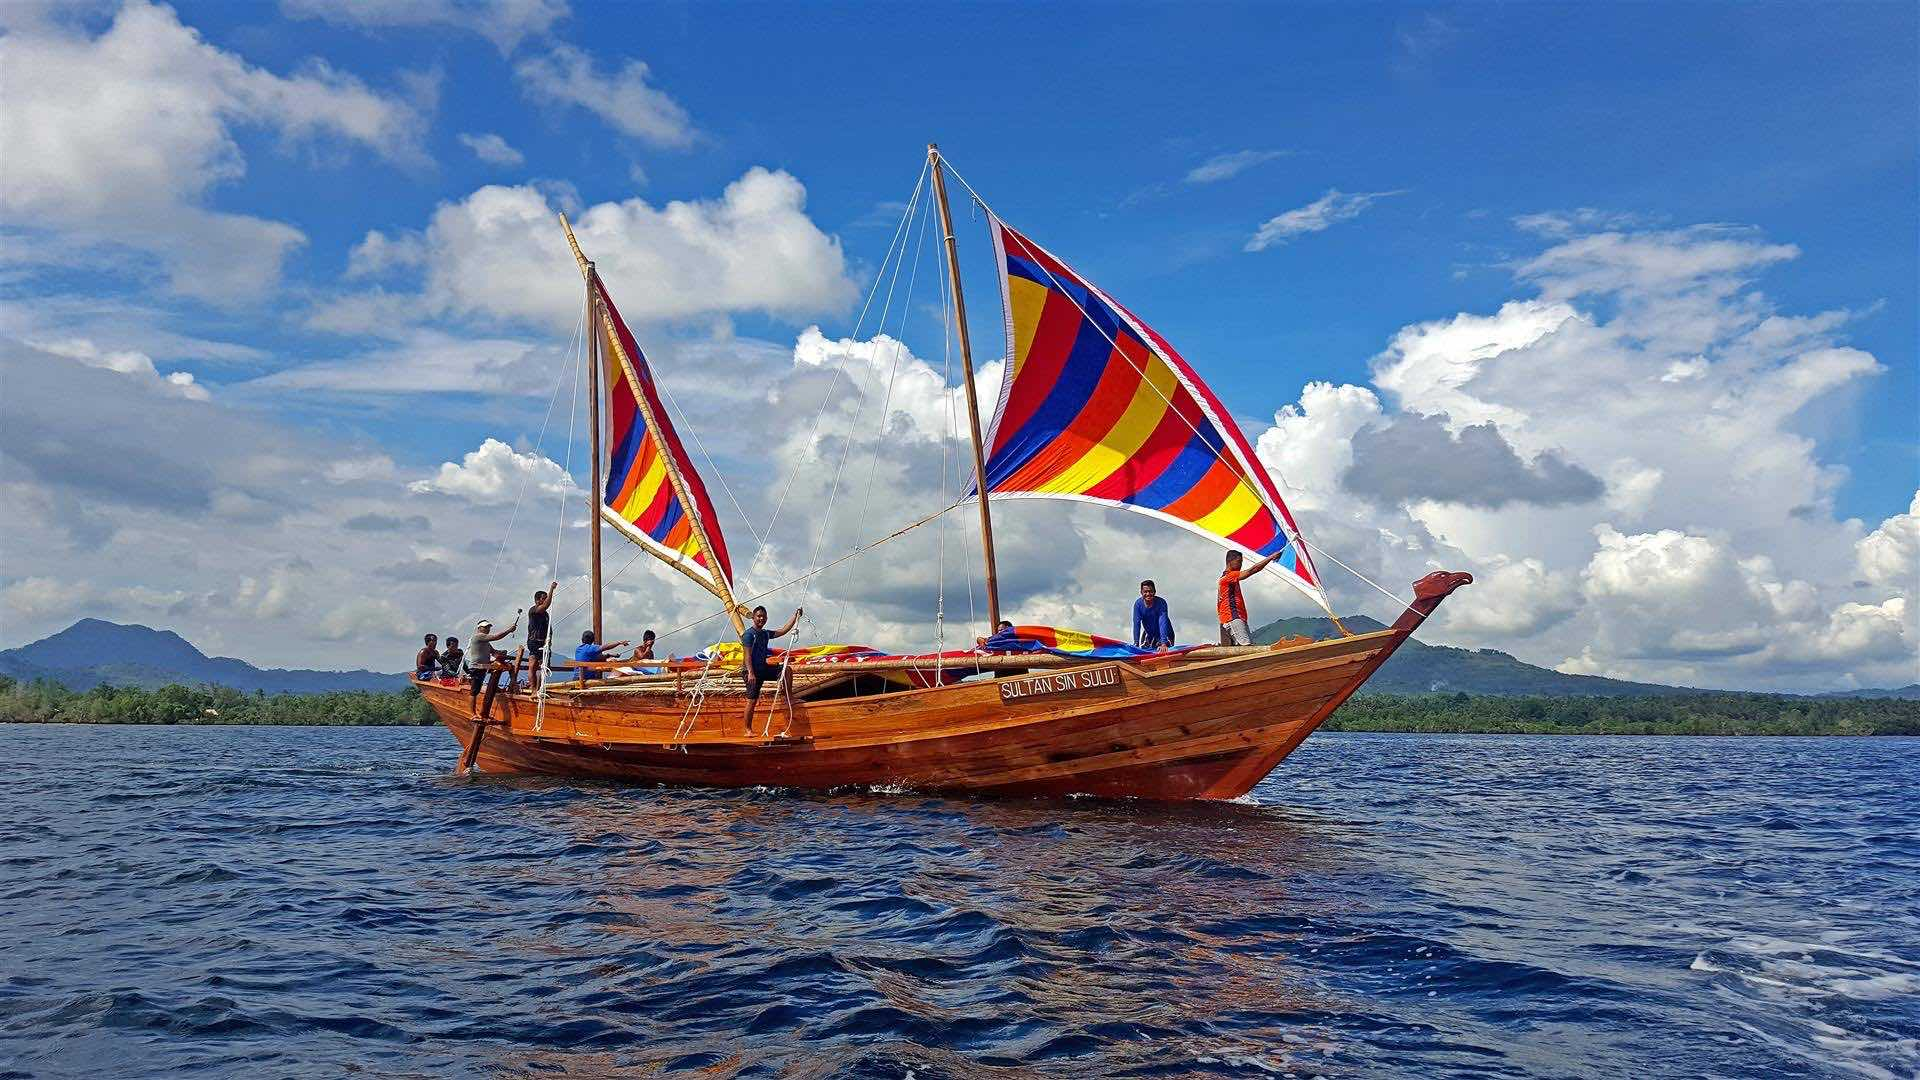 MAIDEN VOYAGE. The Sultan Sin Sulu balangay on its first sea trial. Photo by Fung Yu